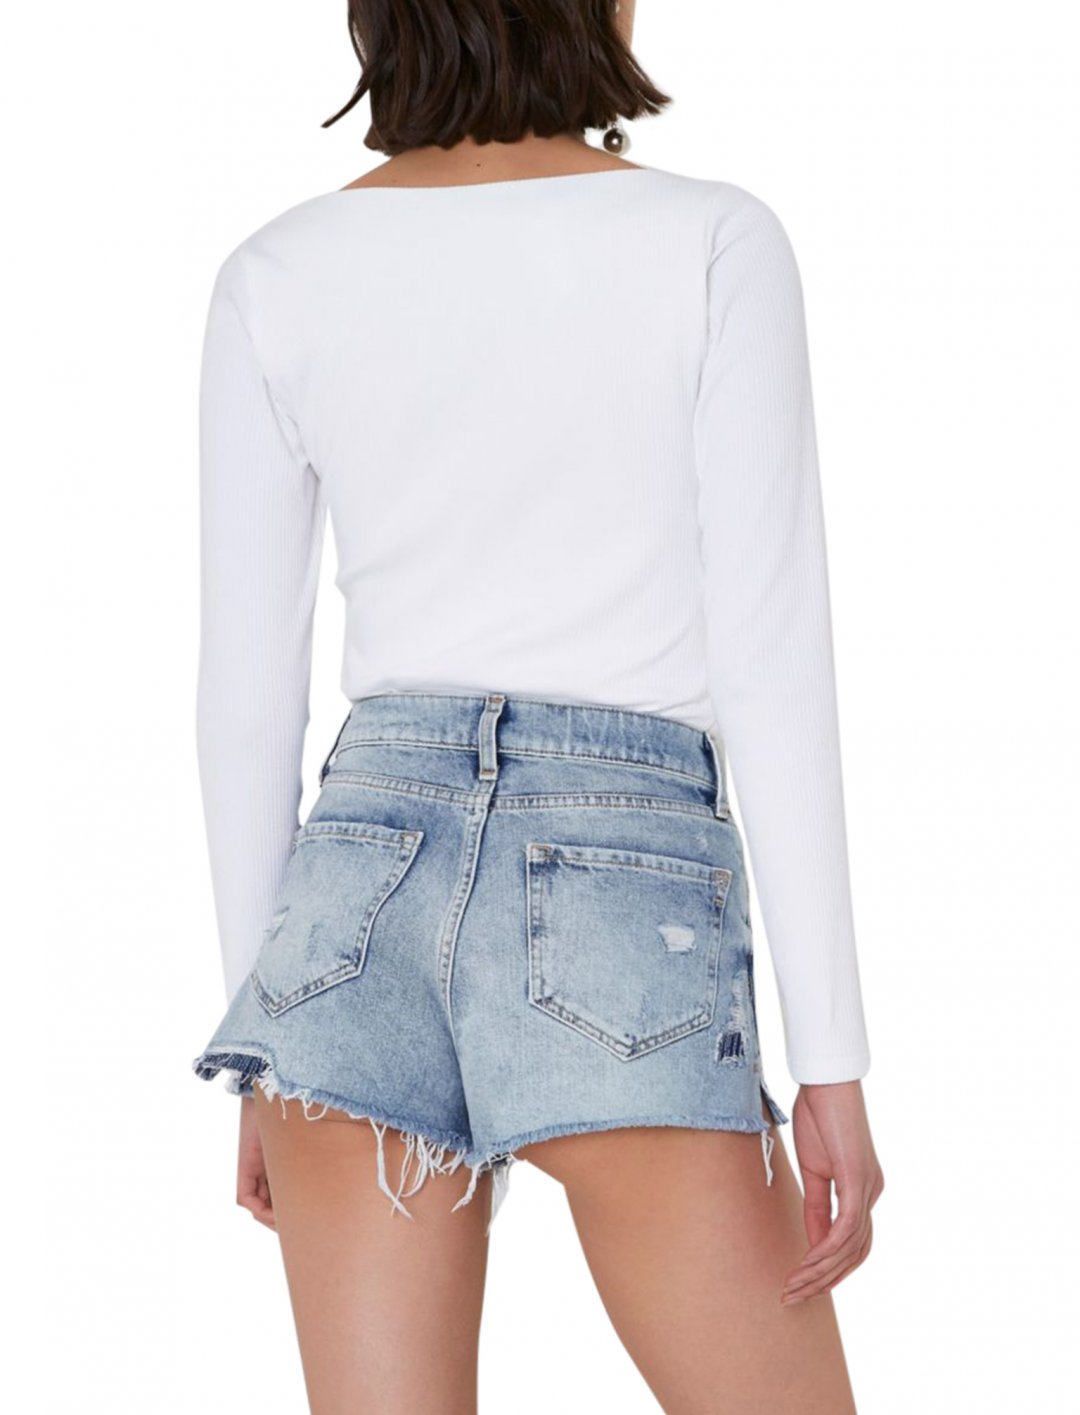 River Island Distressed Shorts Clothing River Island